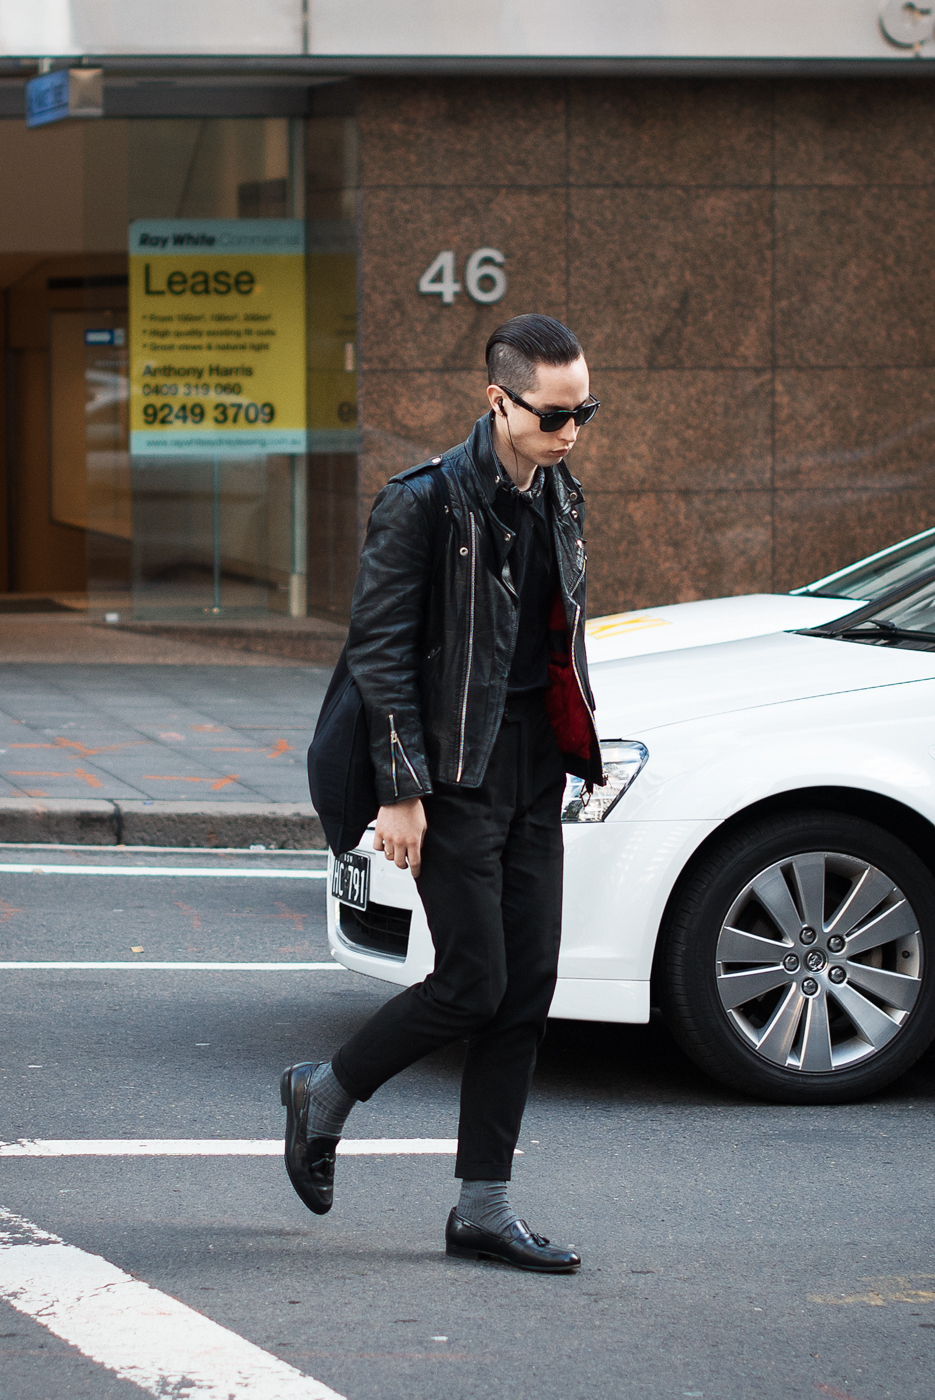 In line. Similar look: Club Monaco Leather Biker Jacket.